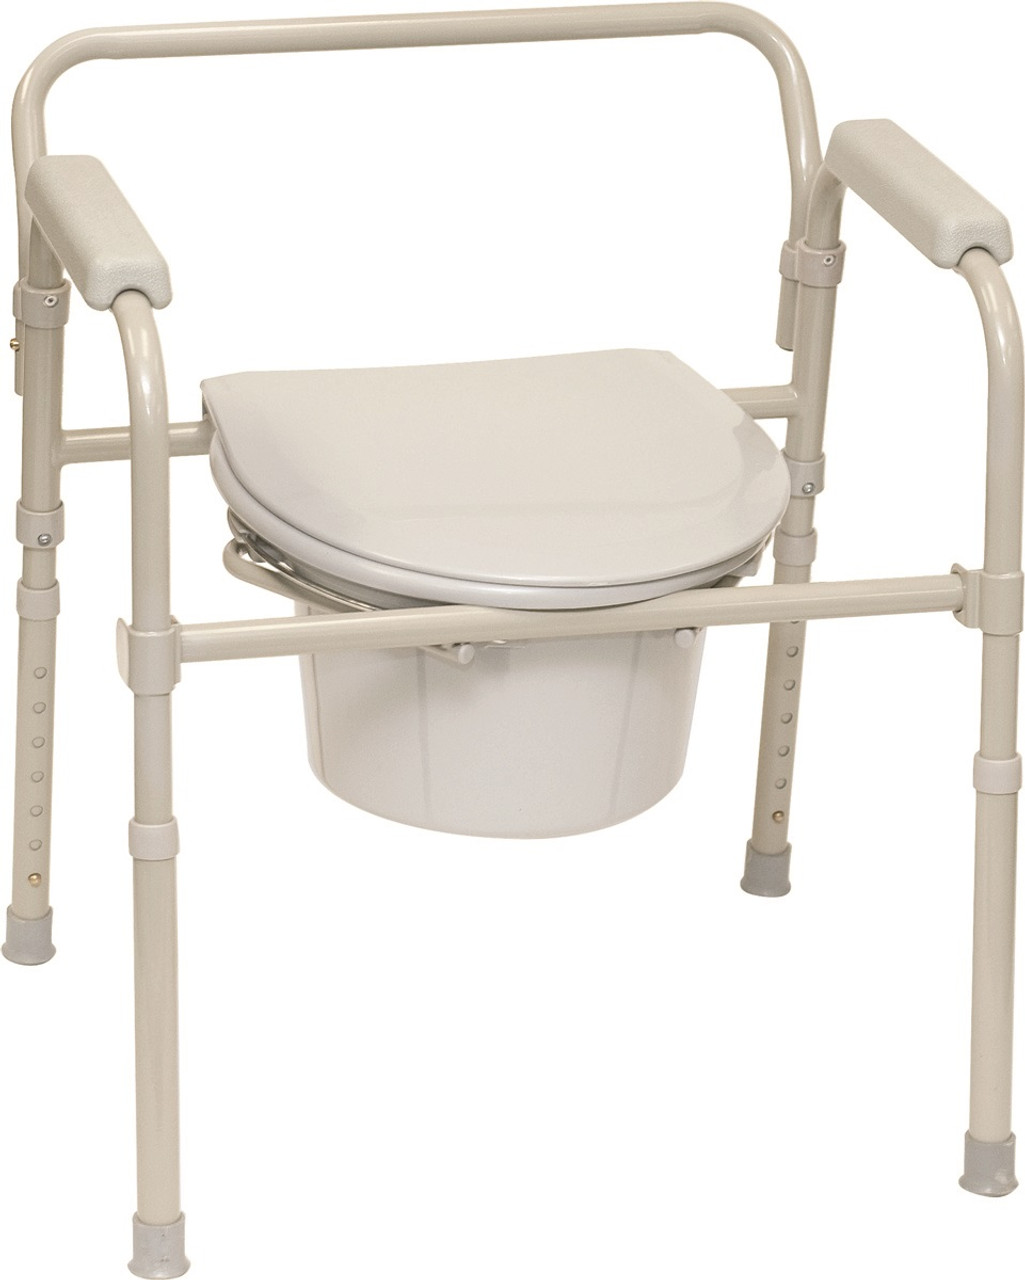 Superb Probasics 3 In 1 Folding Commode Bsfc Pdpeps Interior Chair Design Pdpepsorg